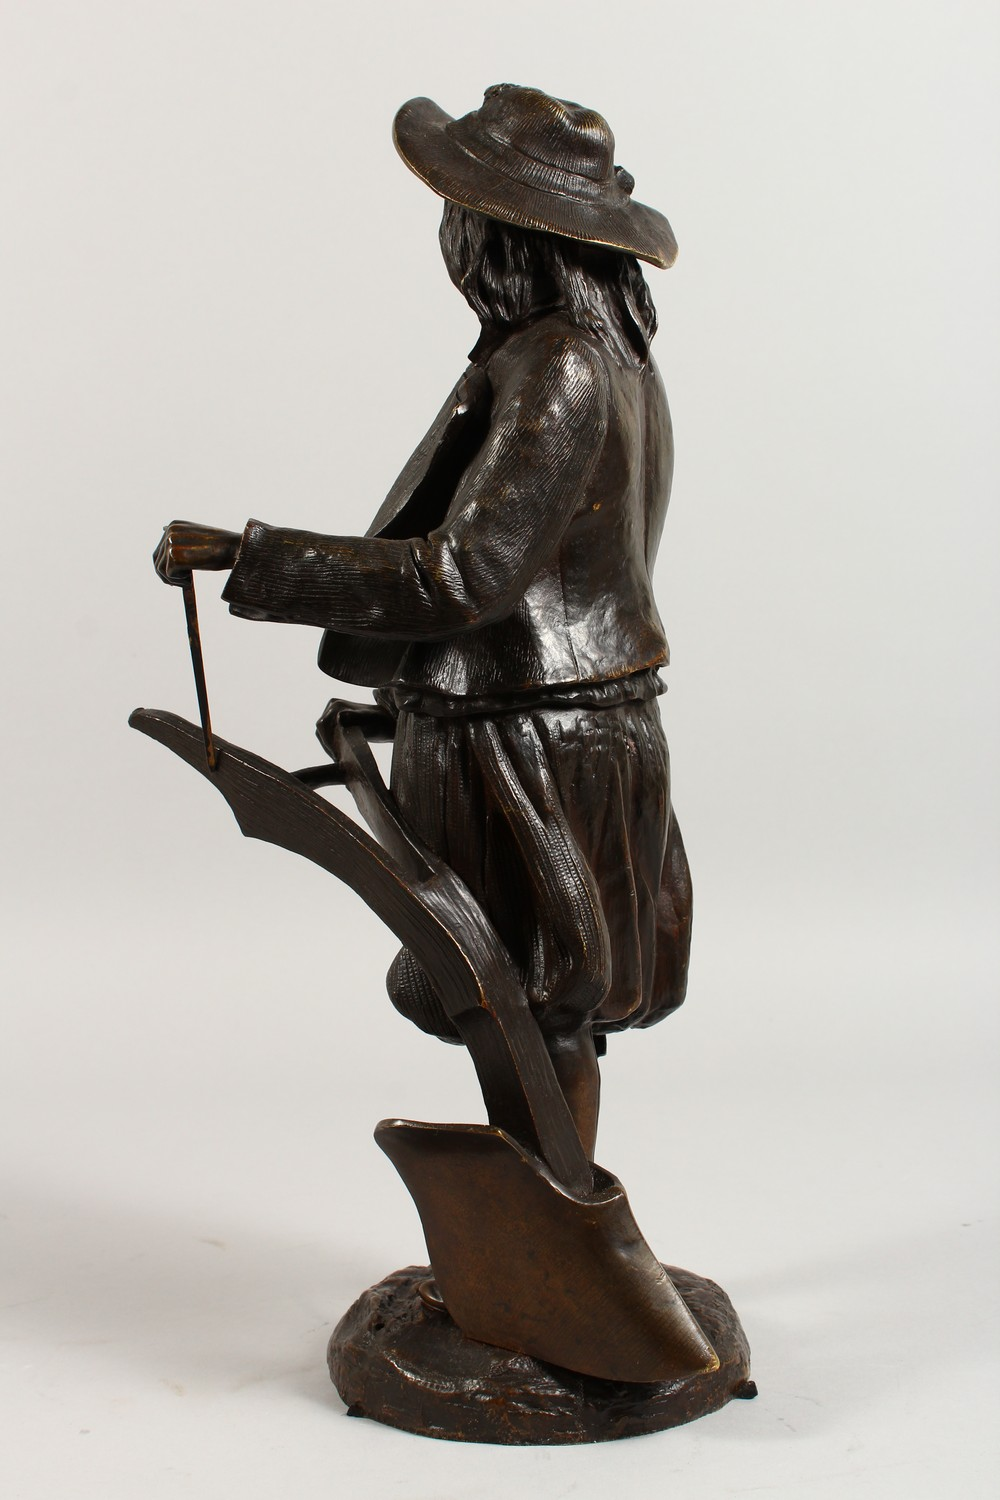 Lot 1205 - EMILE VICTOR BLAVIER (19TH CENTURY) FRENCH A GOOD PAIR OF 19TH CENTURY BRONZE FIGURES OF MALE